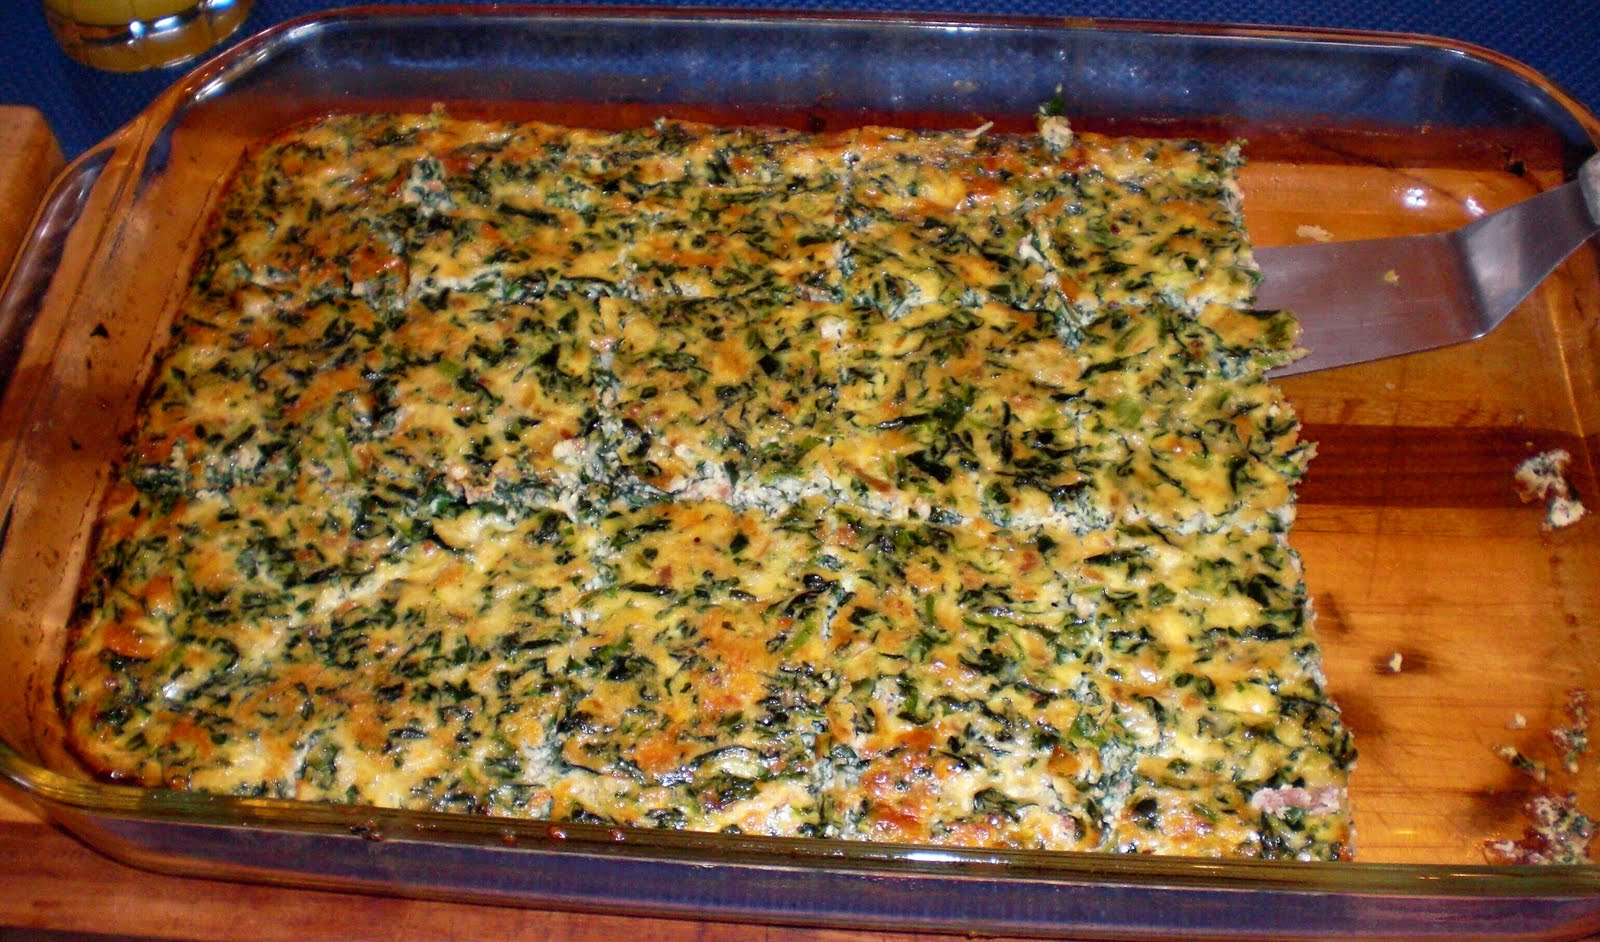 Costco cuisine quick and easy spinach quiche ideal for for Cuisine quick